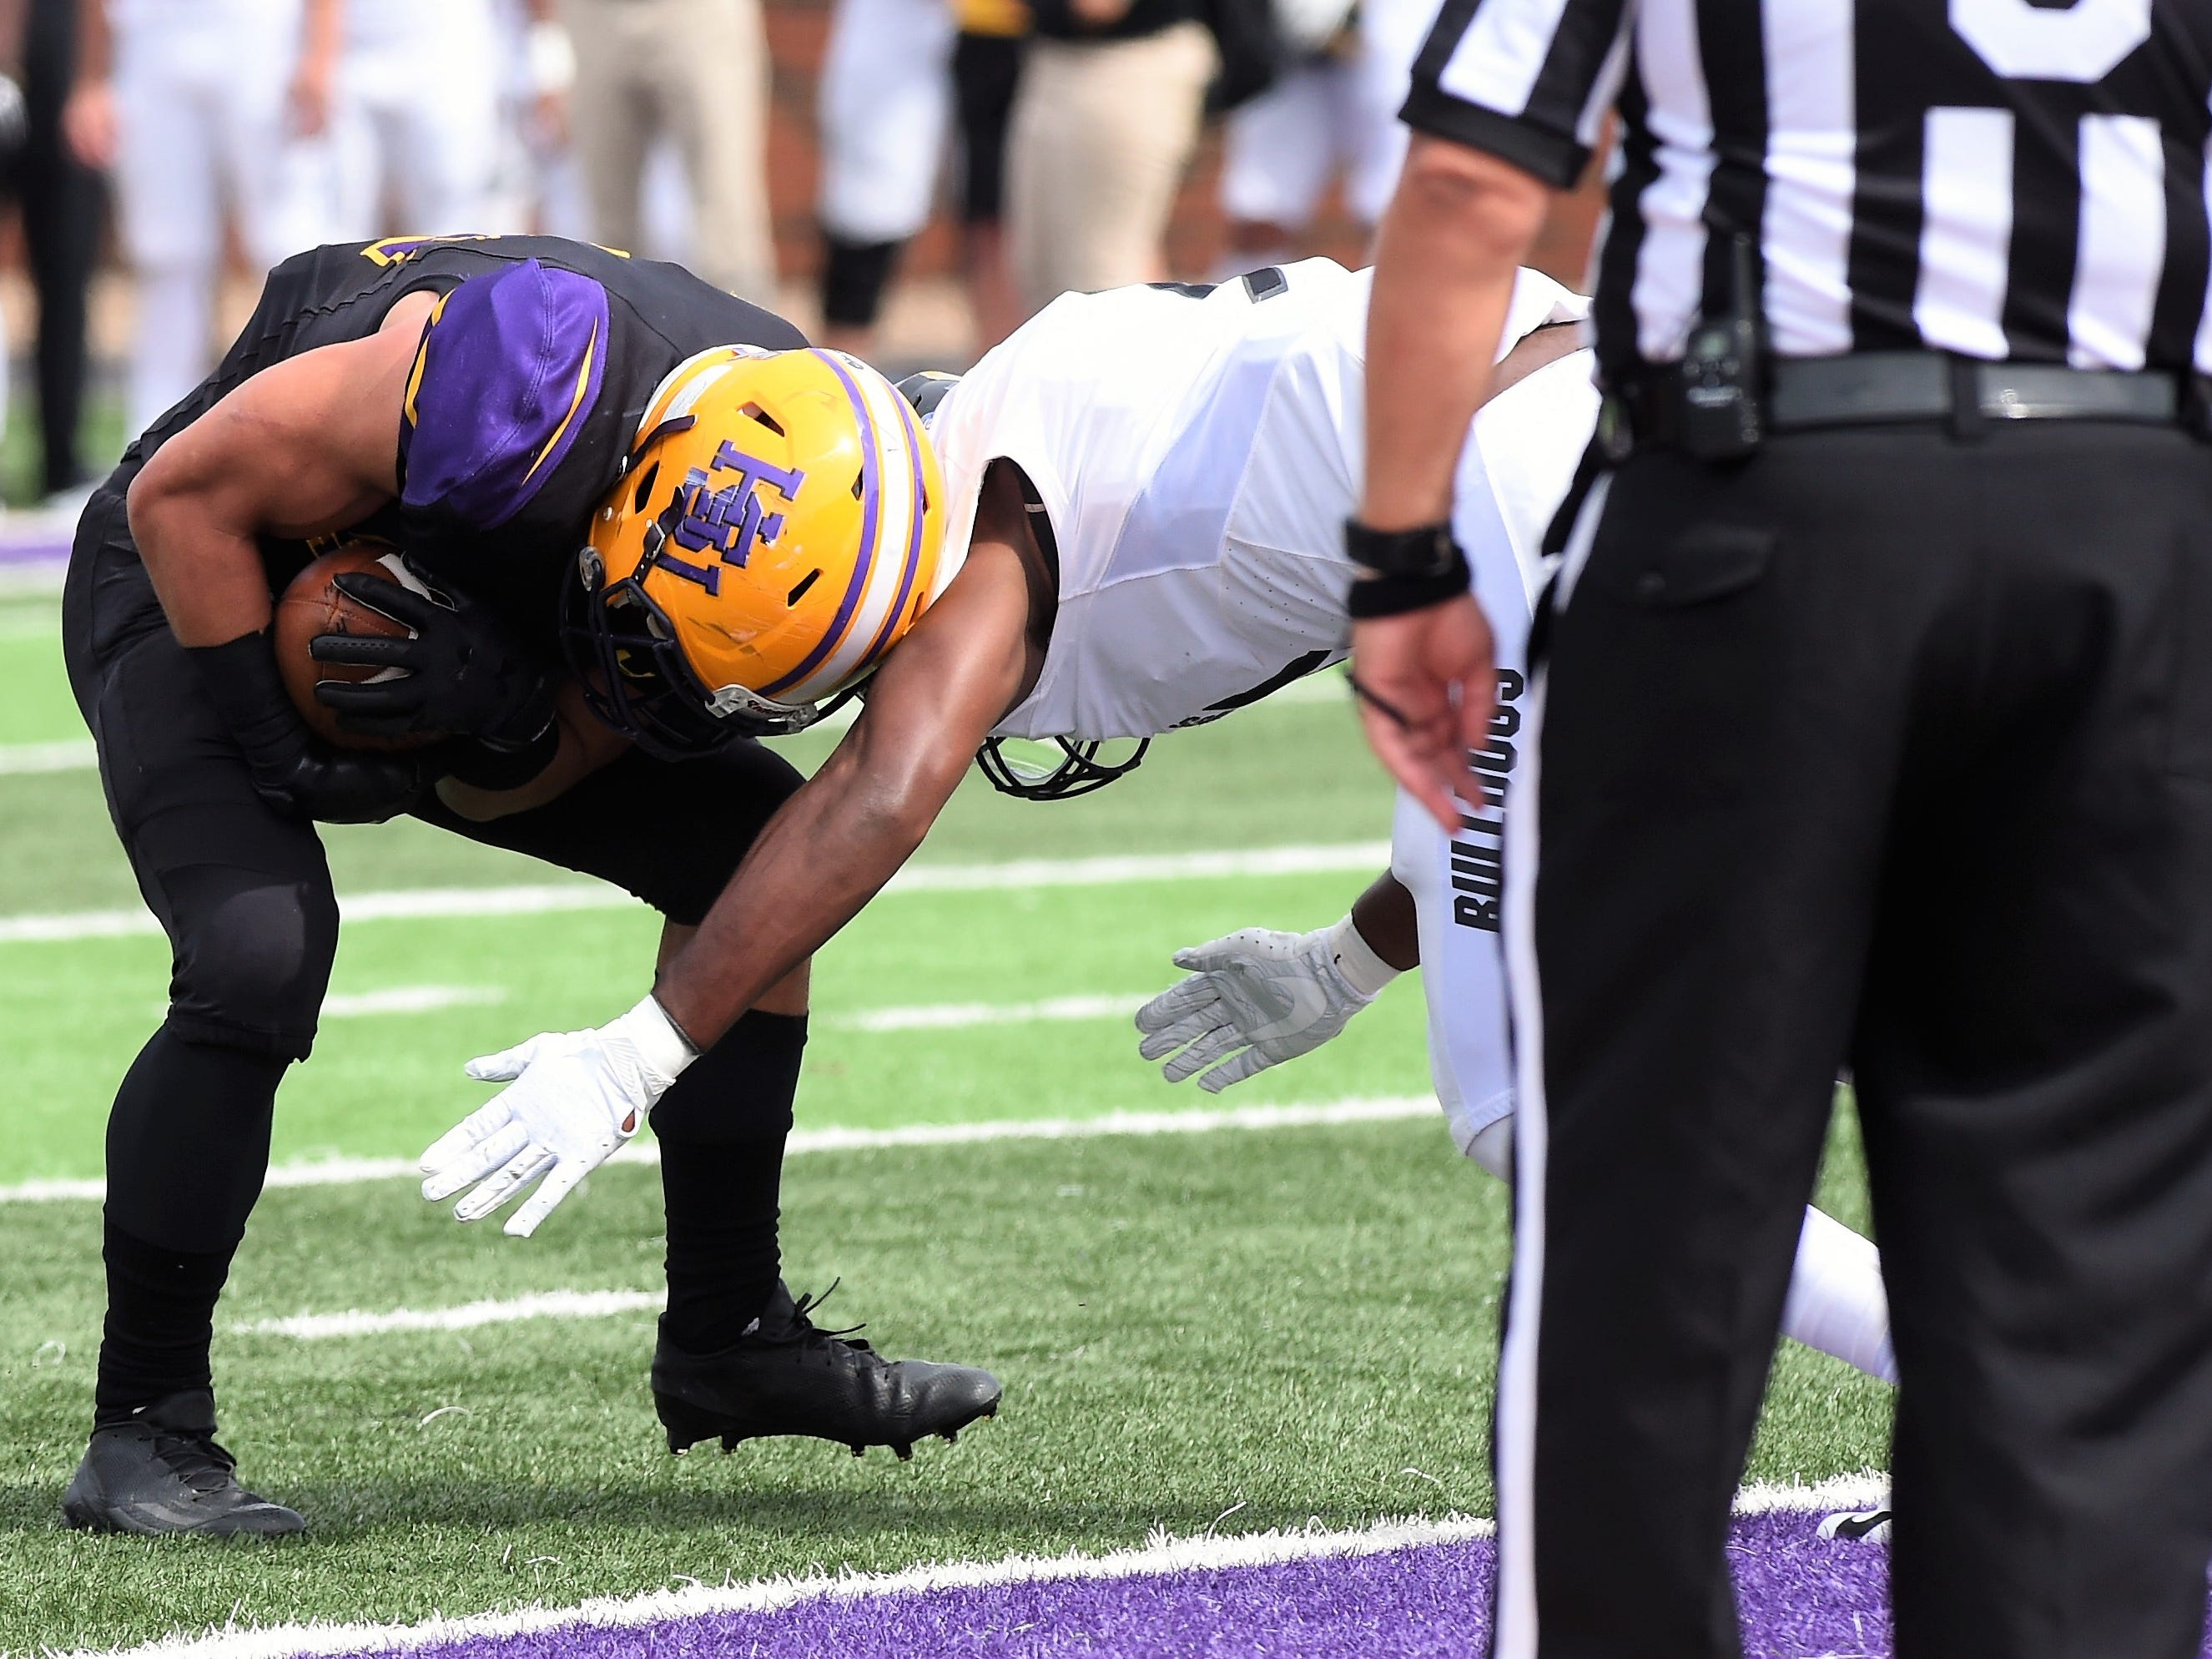 Hardin-Simmons slotback Bryson Hammonds (14) pushes his way into an end zone for a touchdown against Texas Lutheran at Shelton Stadium on Saturday, Oct. 20, 2018.